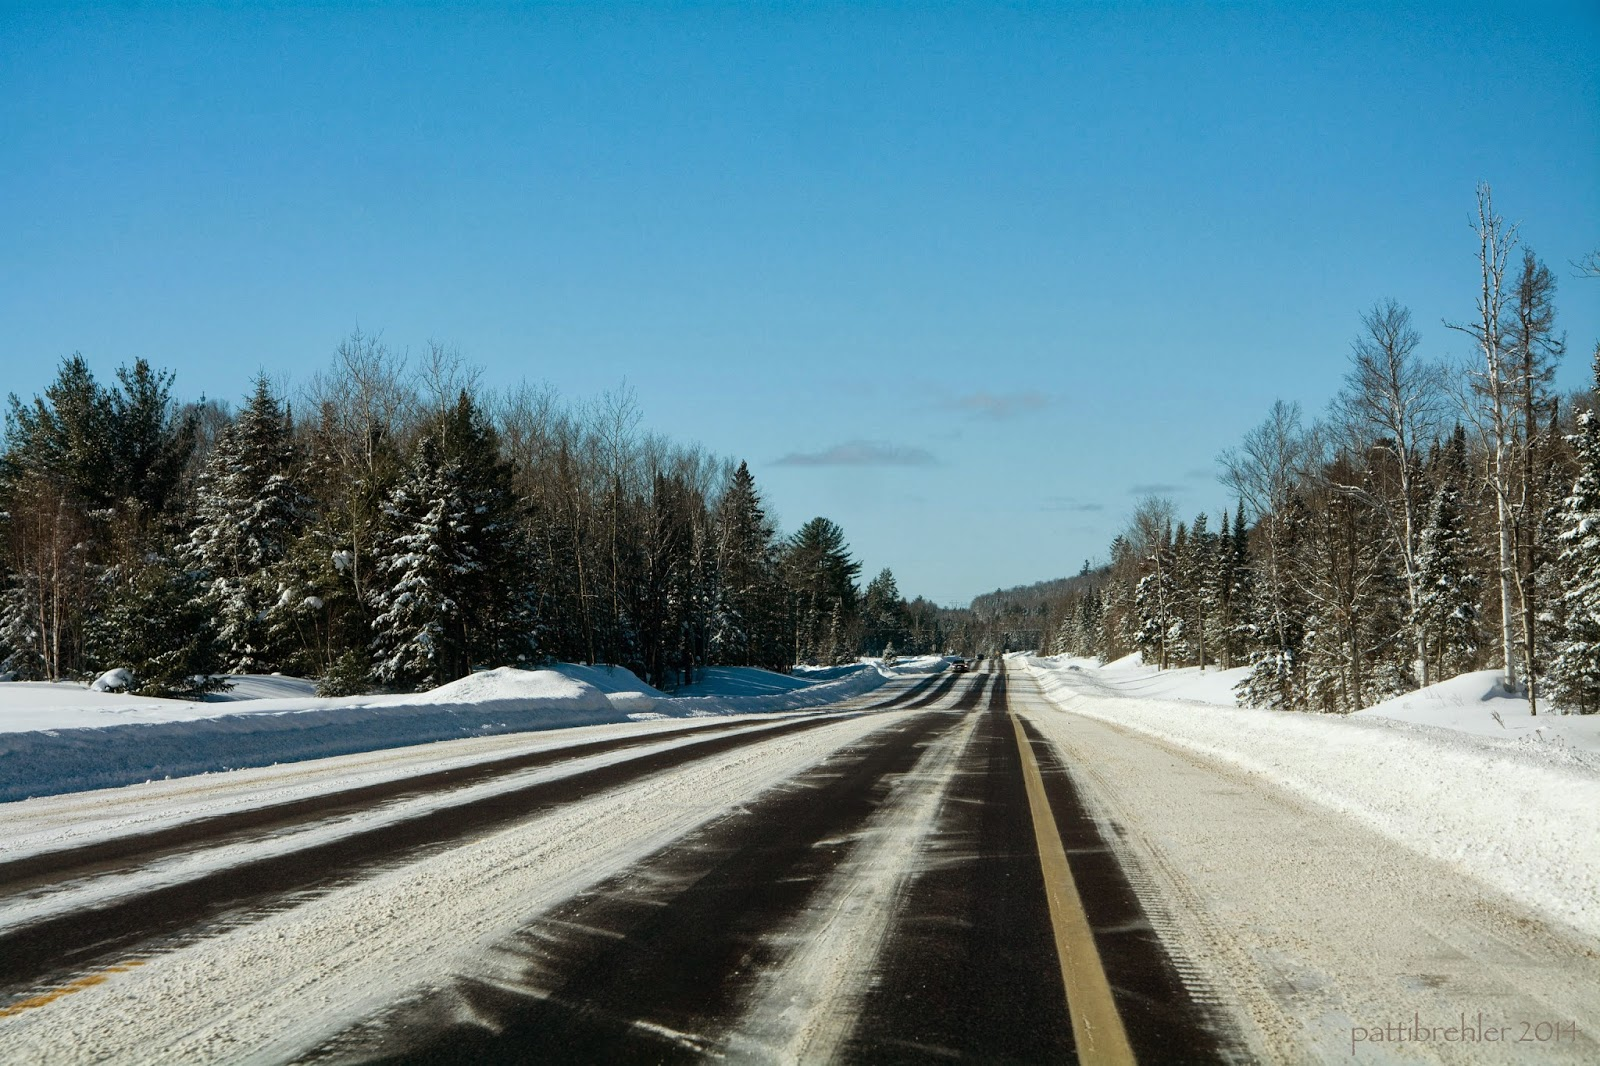 Under a deep blue sky, the view of a partially snow-covered road heading off into the distance. Pine and  hardwood trees line either side of the road.